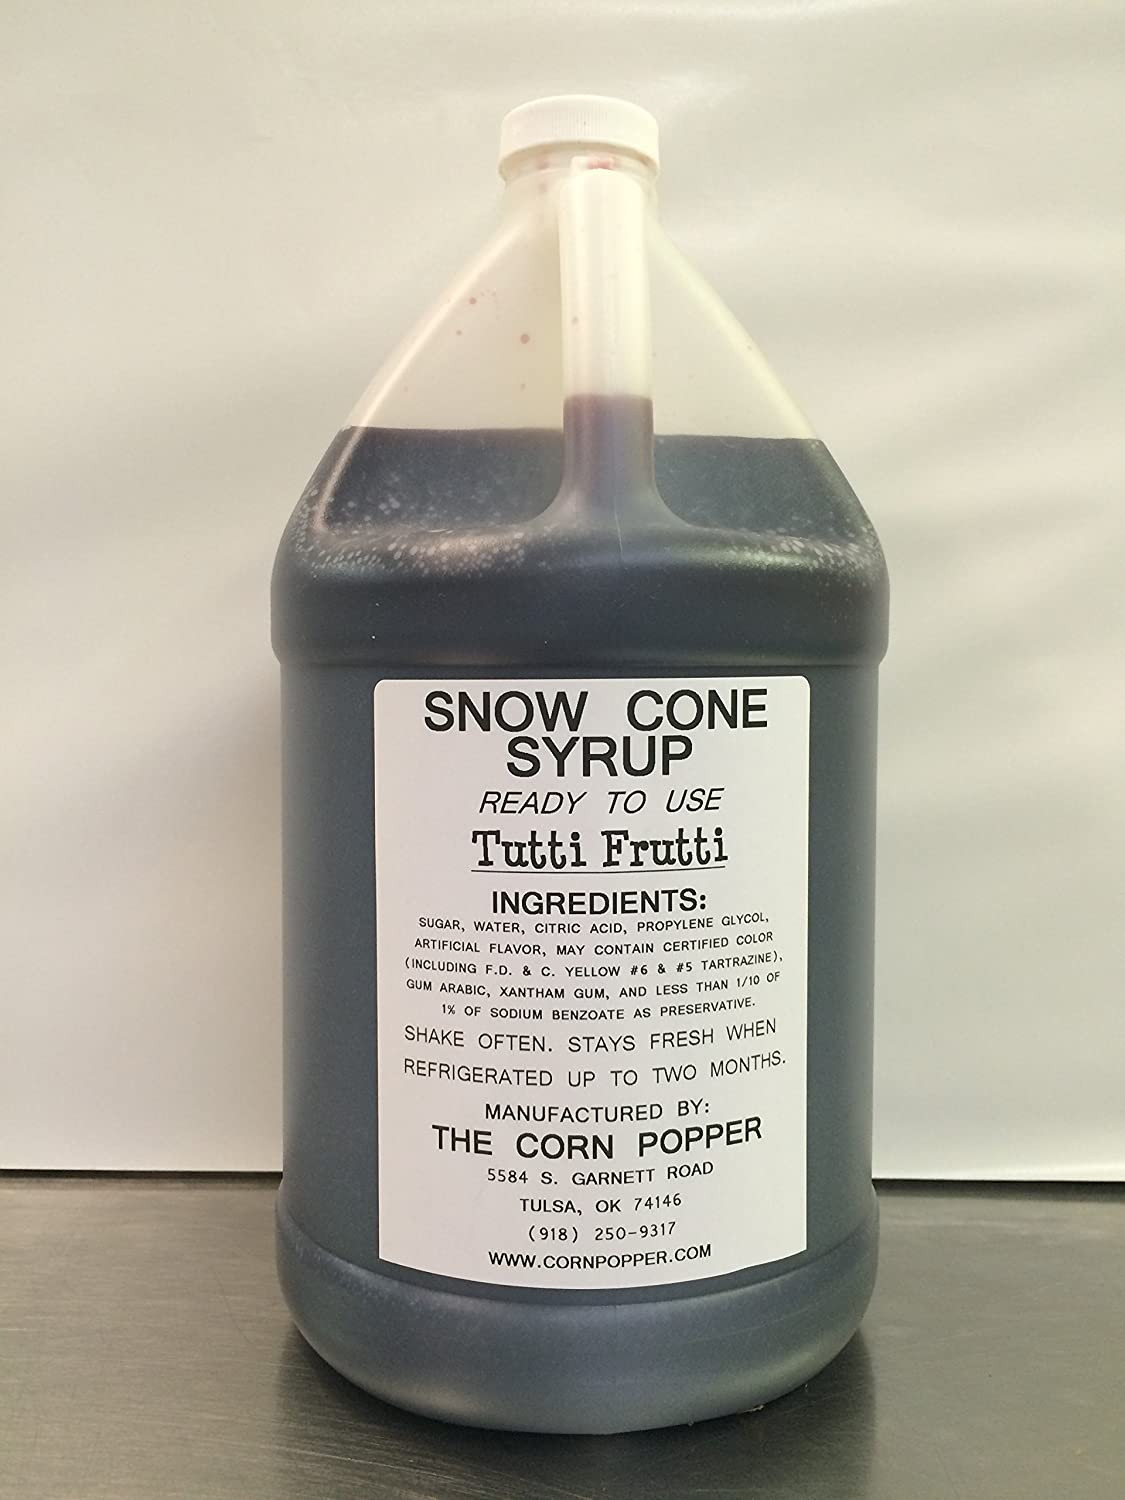 Snow Cone Shaved Ice Syrup Super beauty product restock quality top! made Super popular specialty store Popper Fru Corn by The Tutti